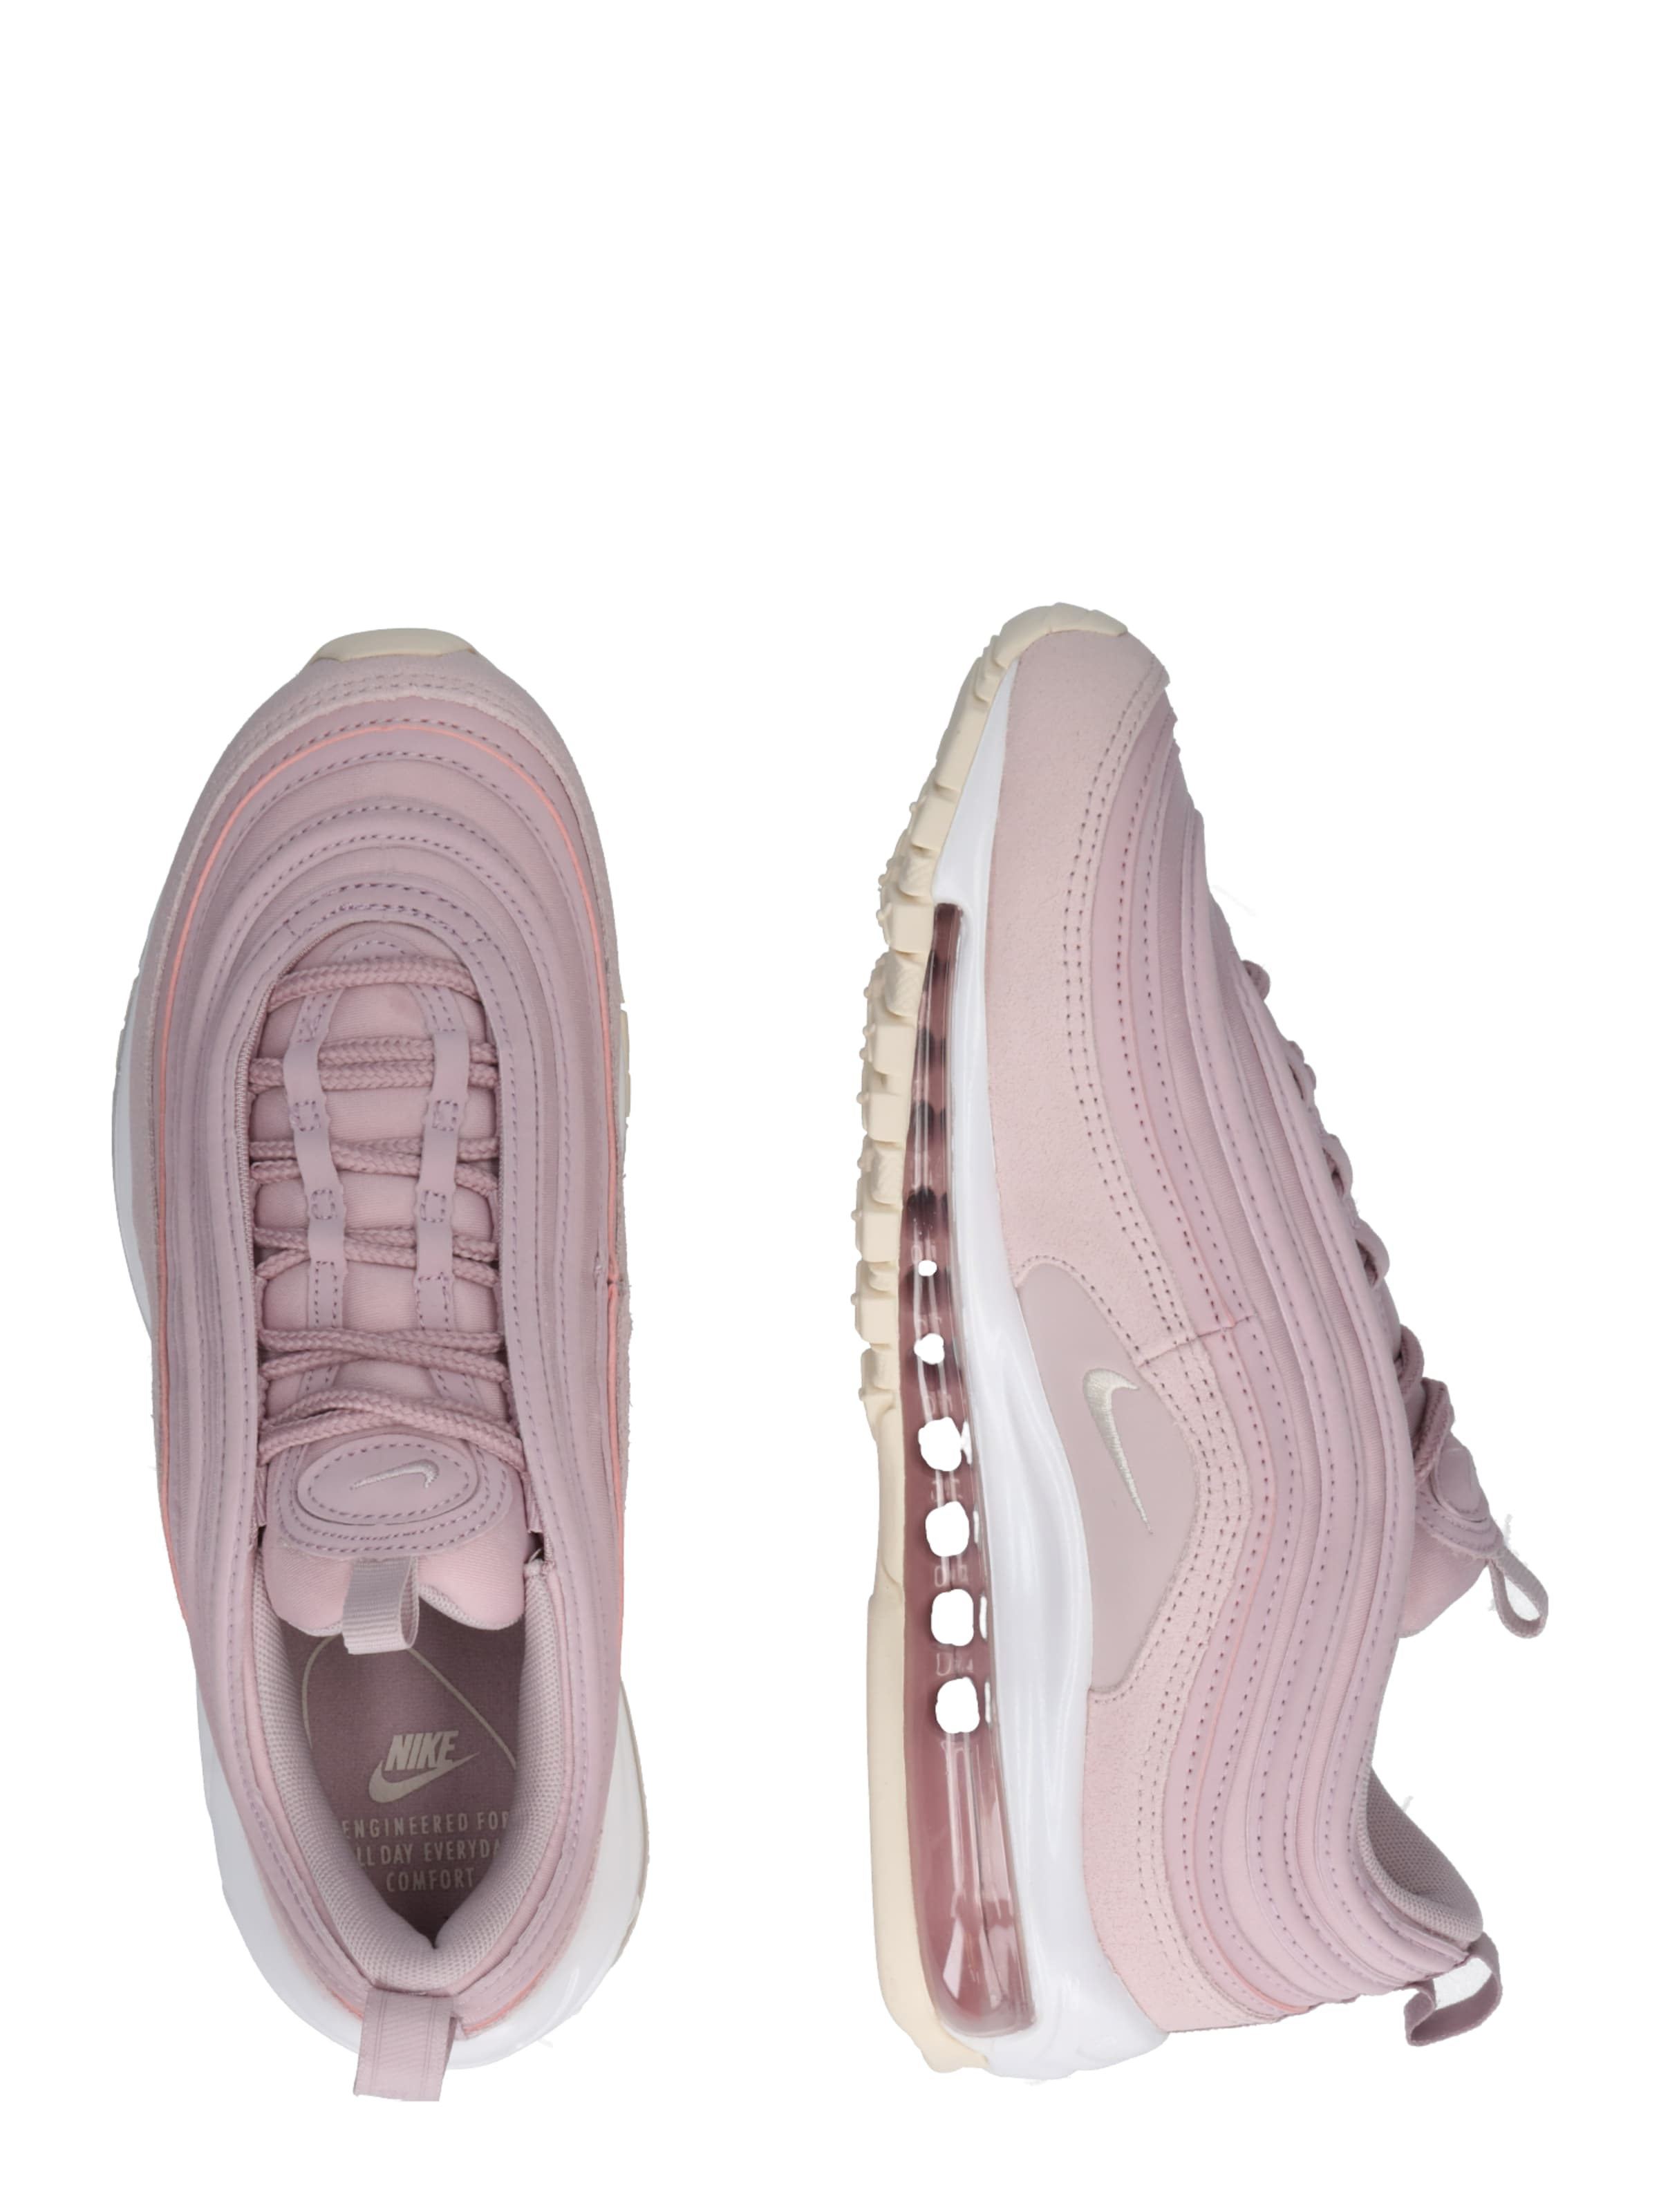 Sneakers Shoe' Premium Nike Sportswear Max '97 RosaWit 'air In Laag MSVqzpGU